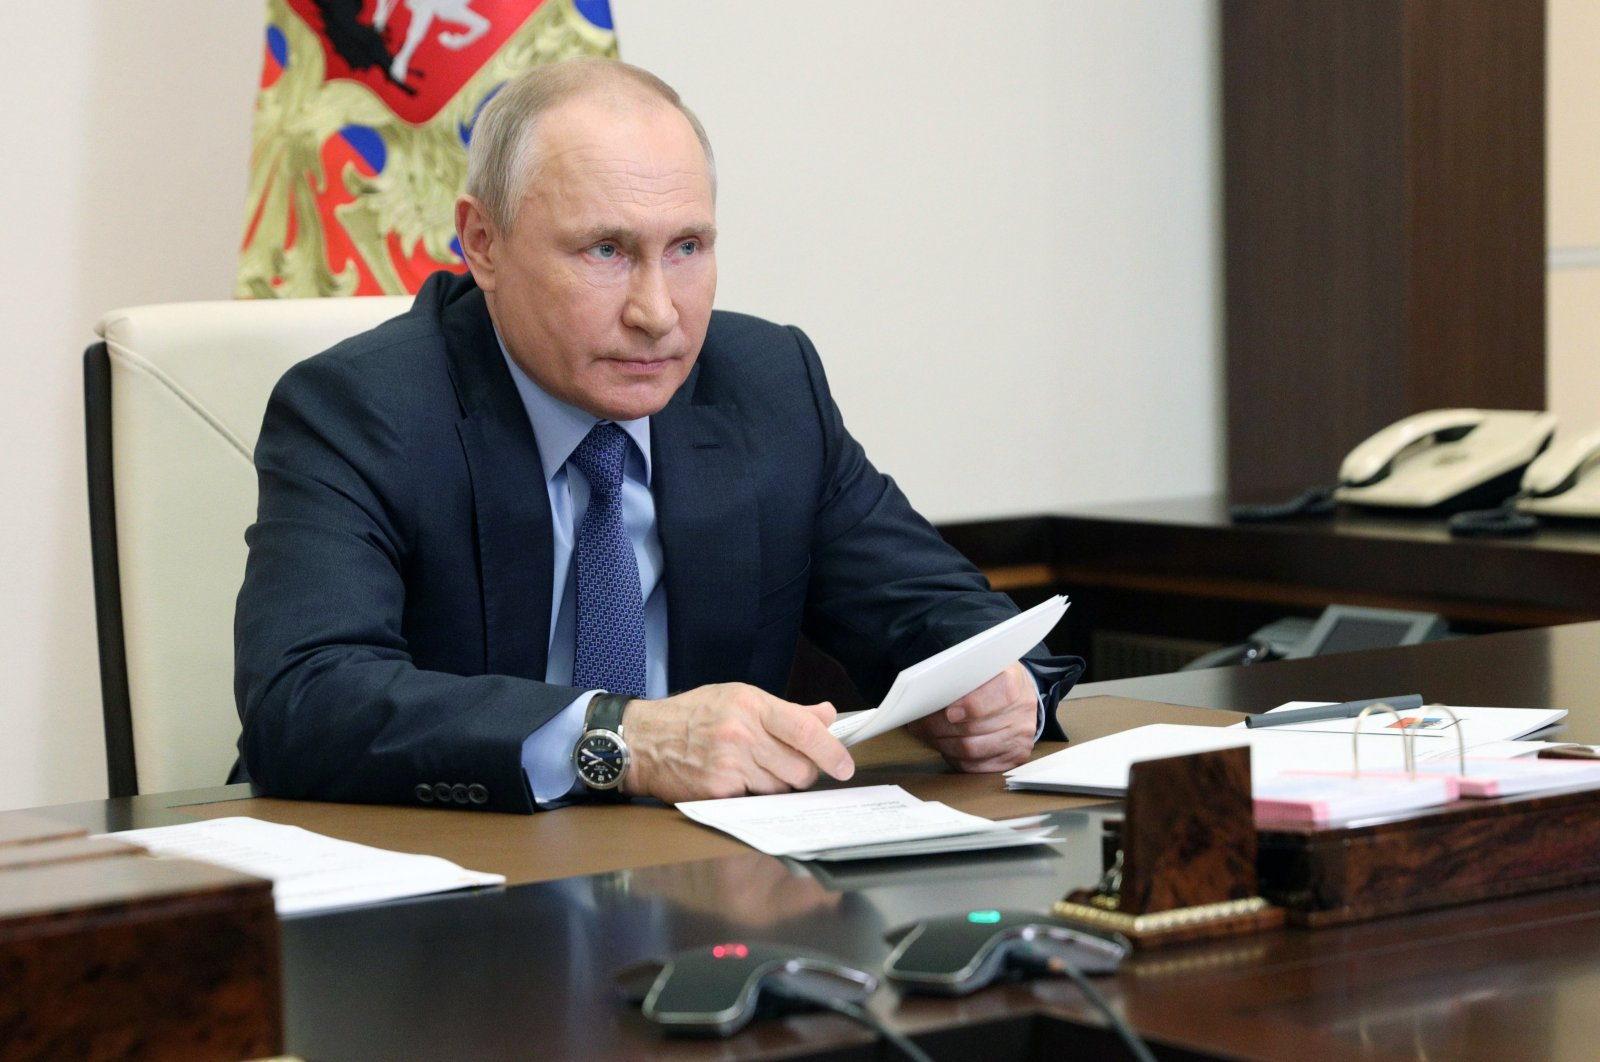 Russian President Vladimir Putin chairs a meeting of Pobeda (Victory) organizing committee via teleconference at the Novo-Ogaryovo residence outside Moscow, Russia, May 20, 2021. (Kremlin Pool Photo via AP)